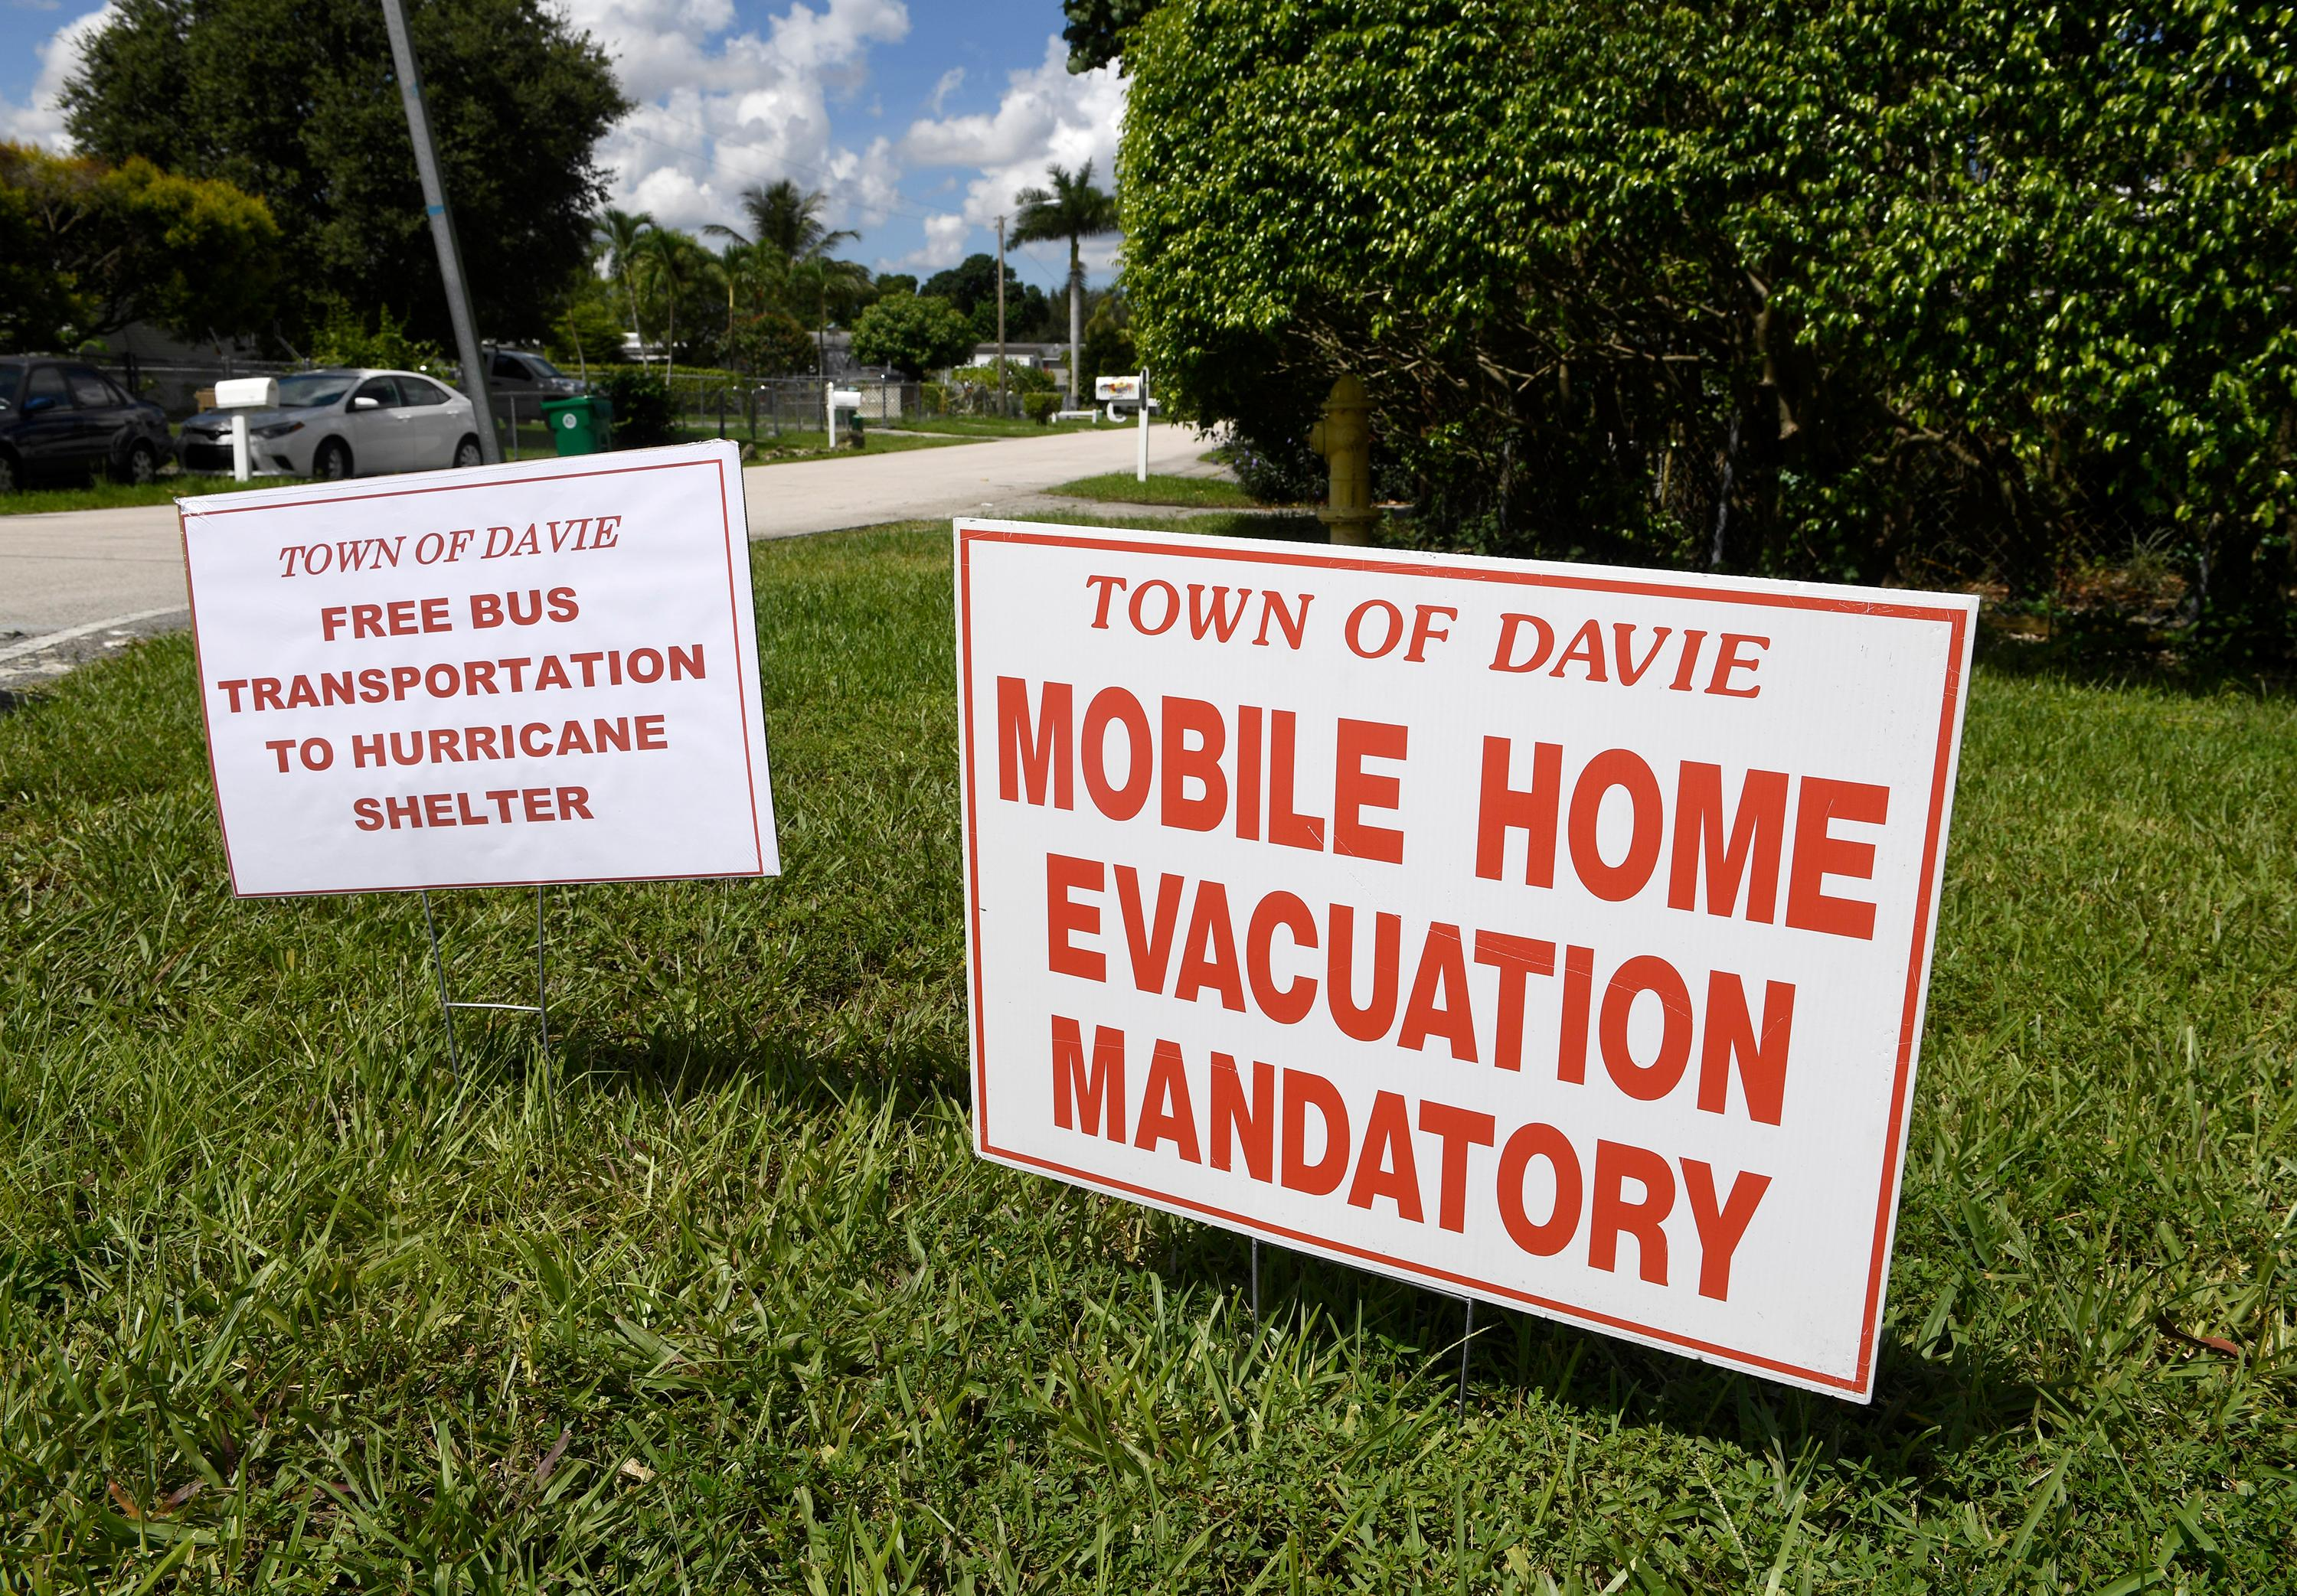 Two signs are displayed outside the SAGA Estates Mobile Home Park in Davie, Fla., Thursday, Sept. 7, 2017, telling residents that there is a mandatory evacuation for all mobile home residents in effect  as Hurricane Irma threatens South Florida. (Taimy Alvarez/South Florida Sun-Sentinel via AP)